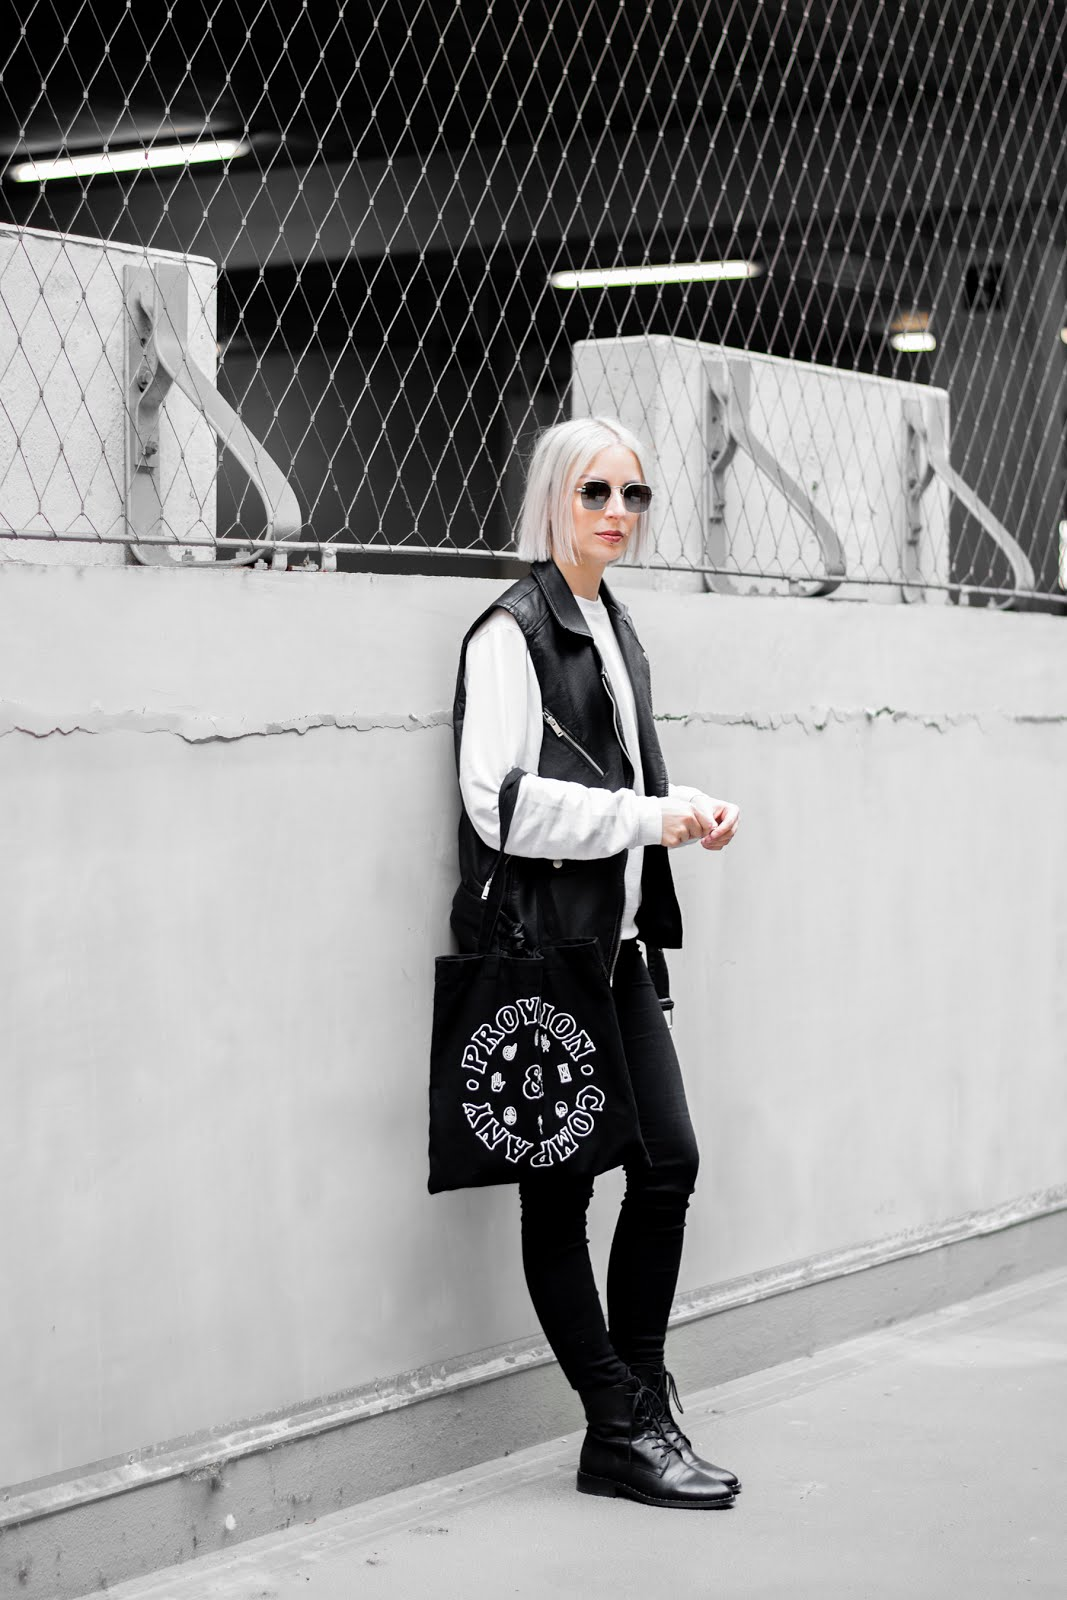 black and white outfit, minimal, street style, pandco, provision & co, sacha shoes, lace up boots, veter laarzen, biker vest